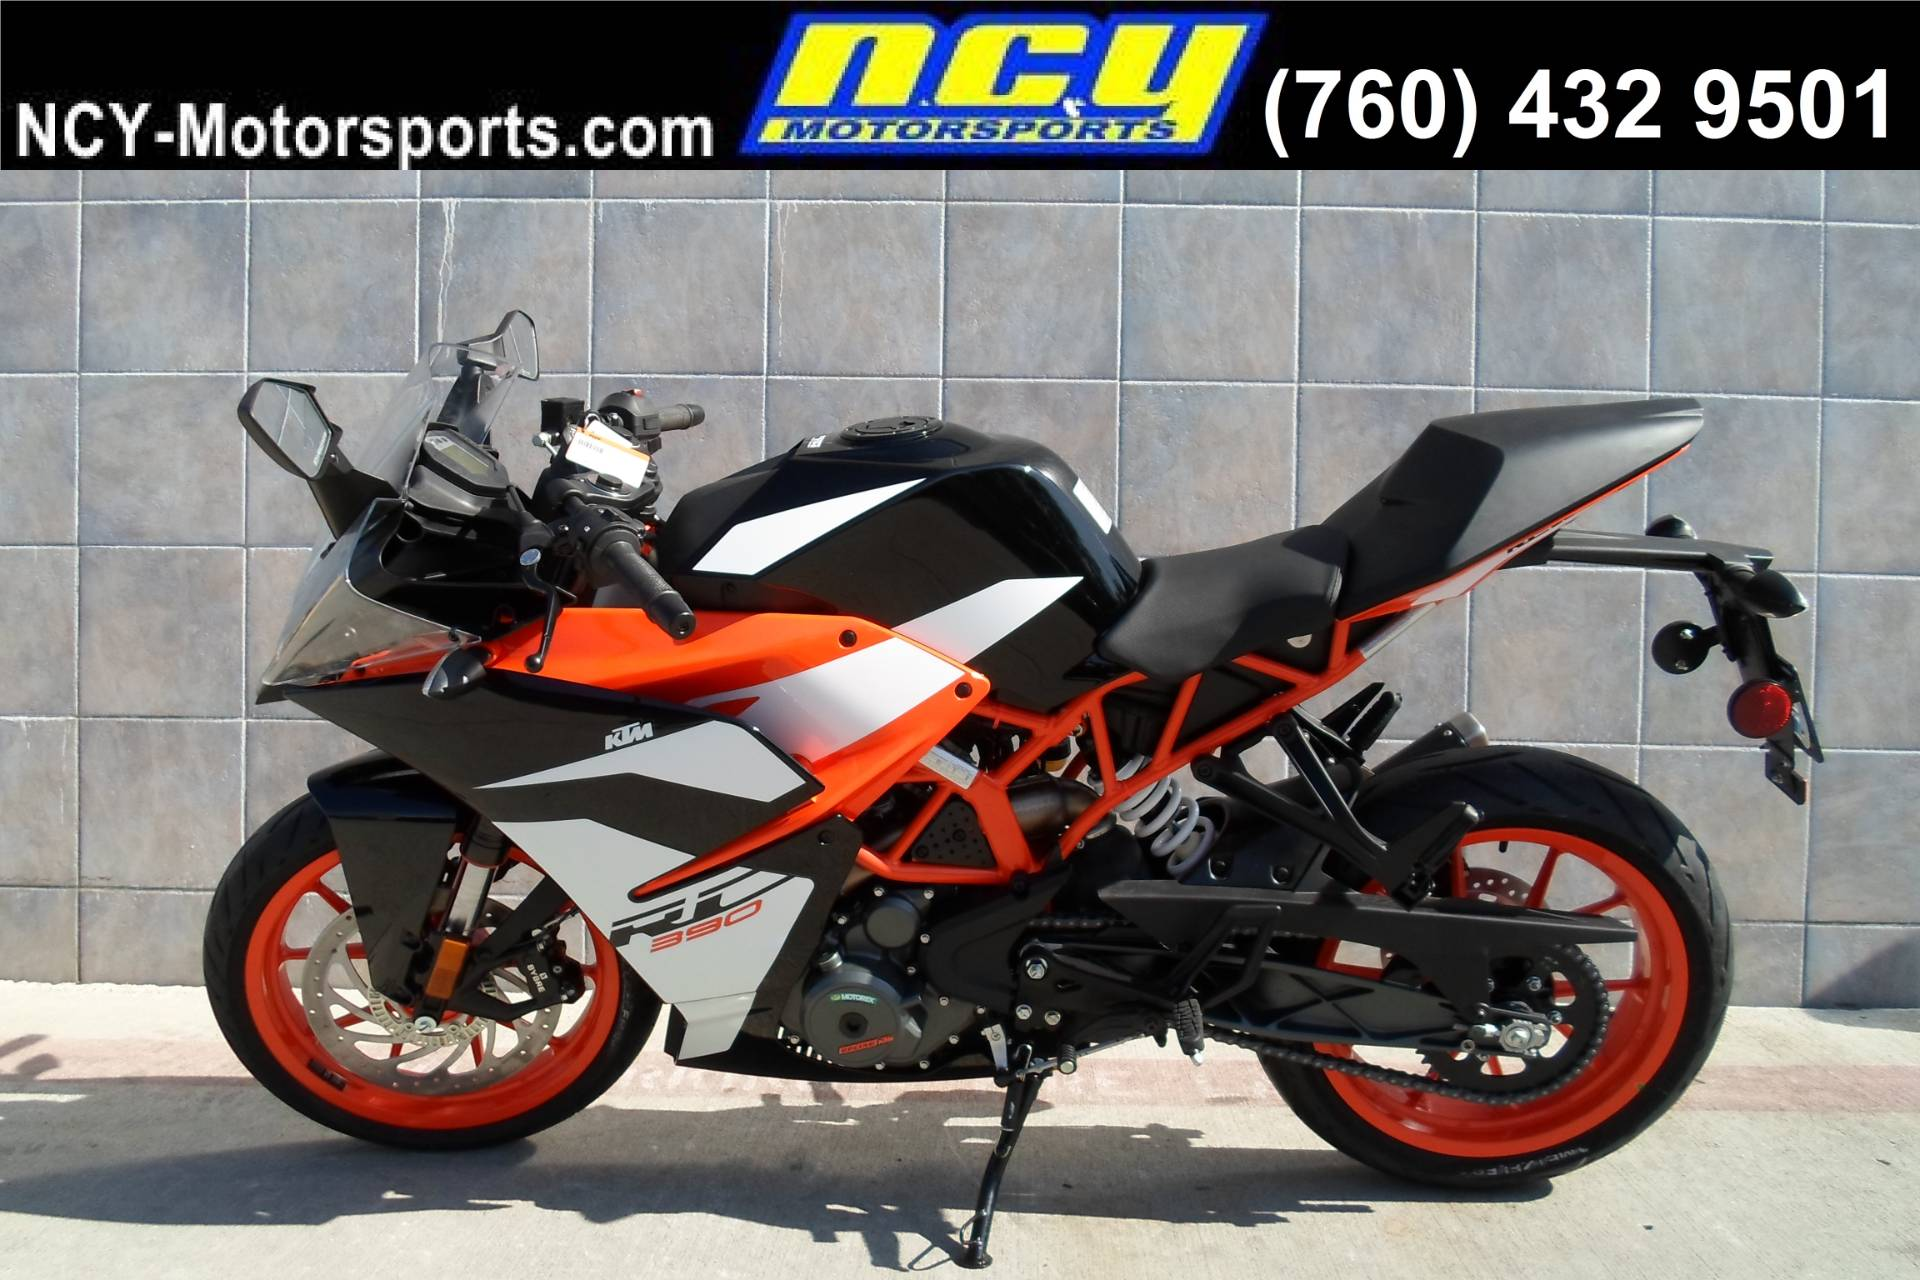 New Motorcycles For Sale San Marcos Ca >> New 2018 KTM RC 390 Motorcycles in San Marcos, CA